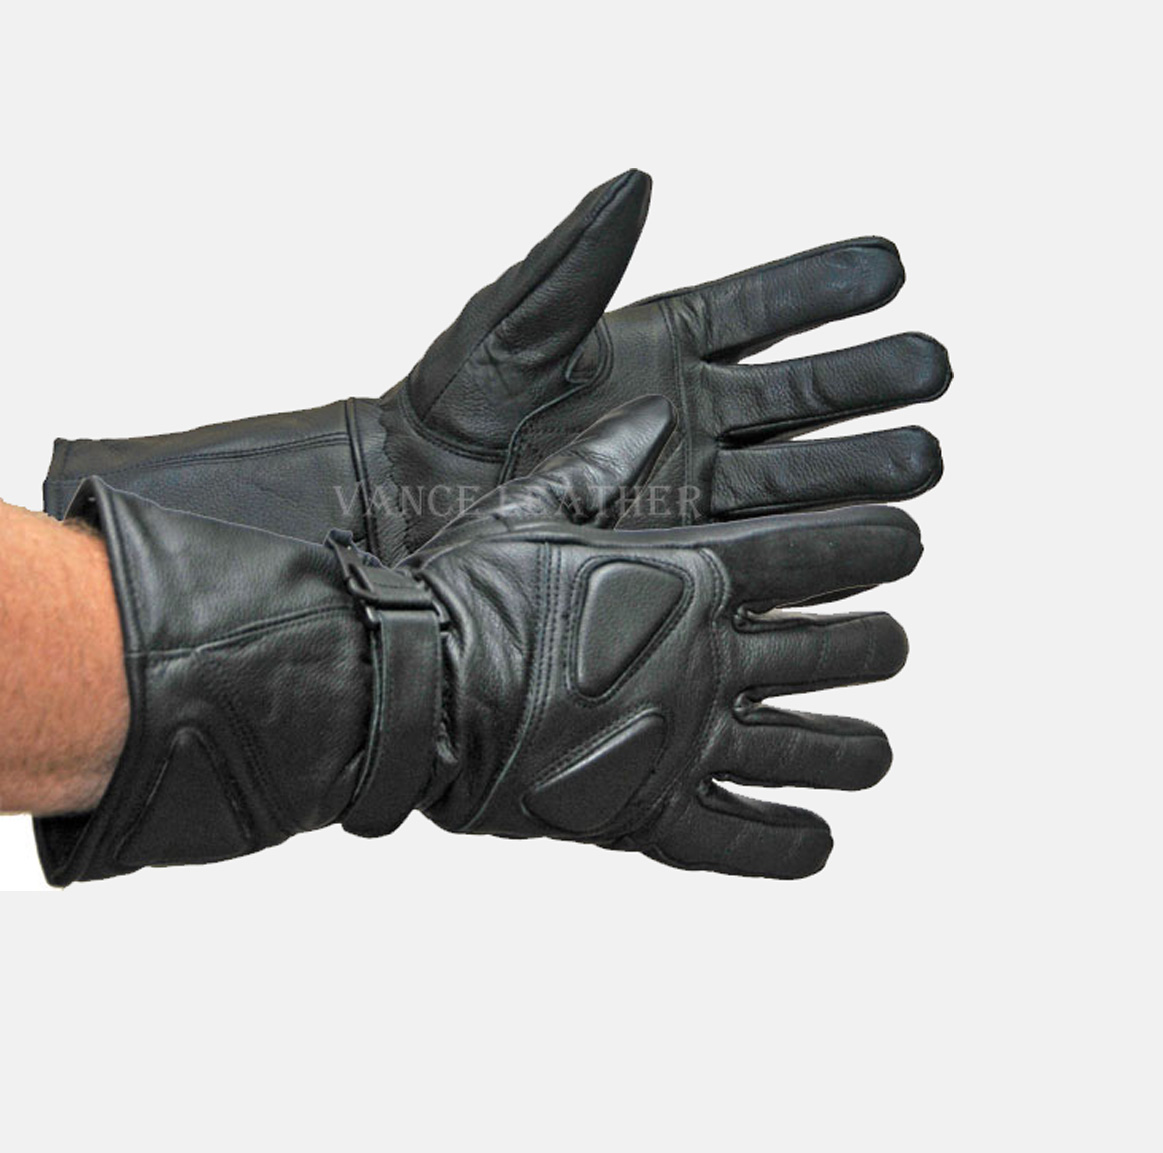 Motorcycle Riding Glove Insulated Gauntlet Gloves Lamb